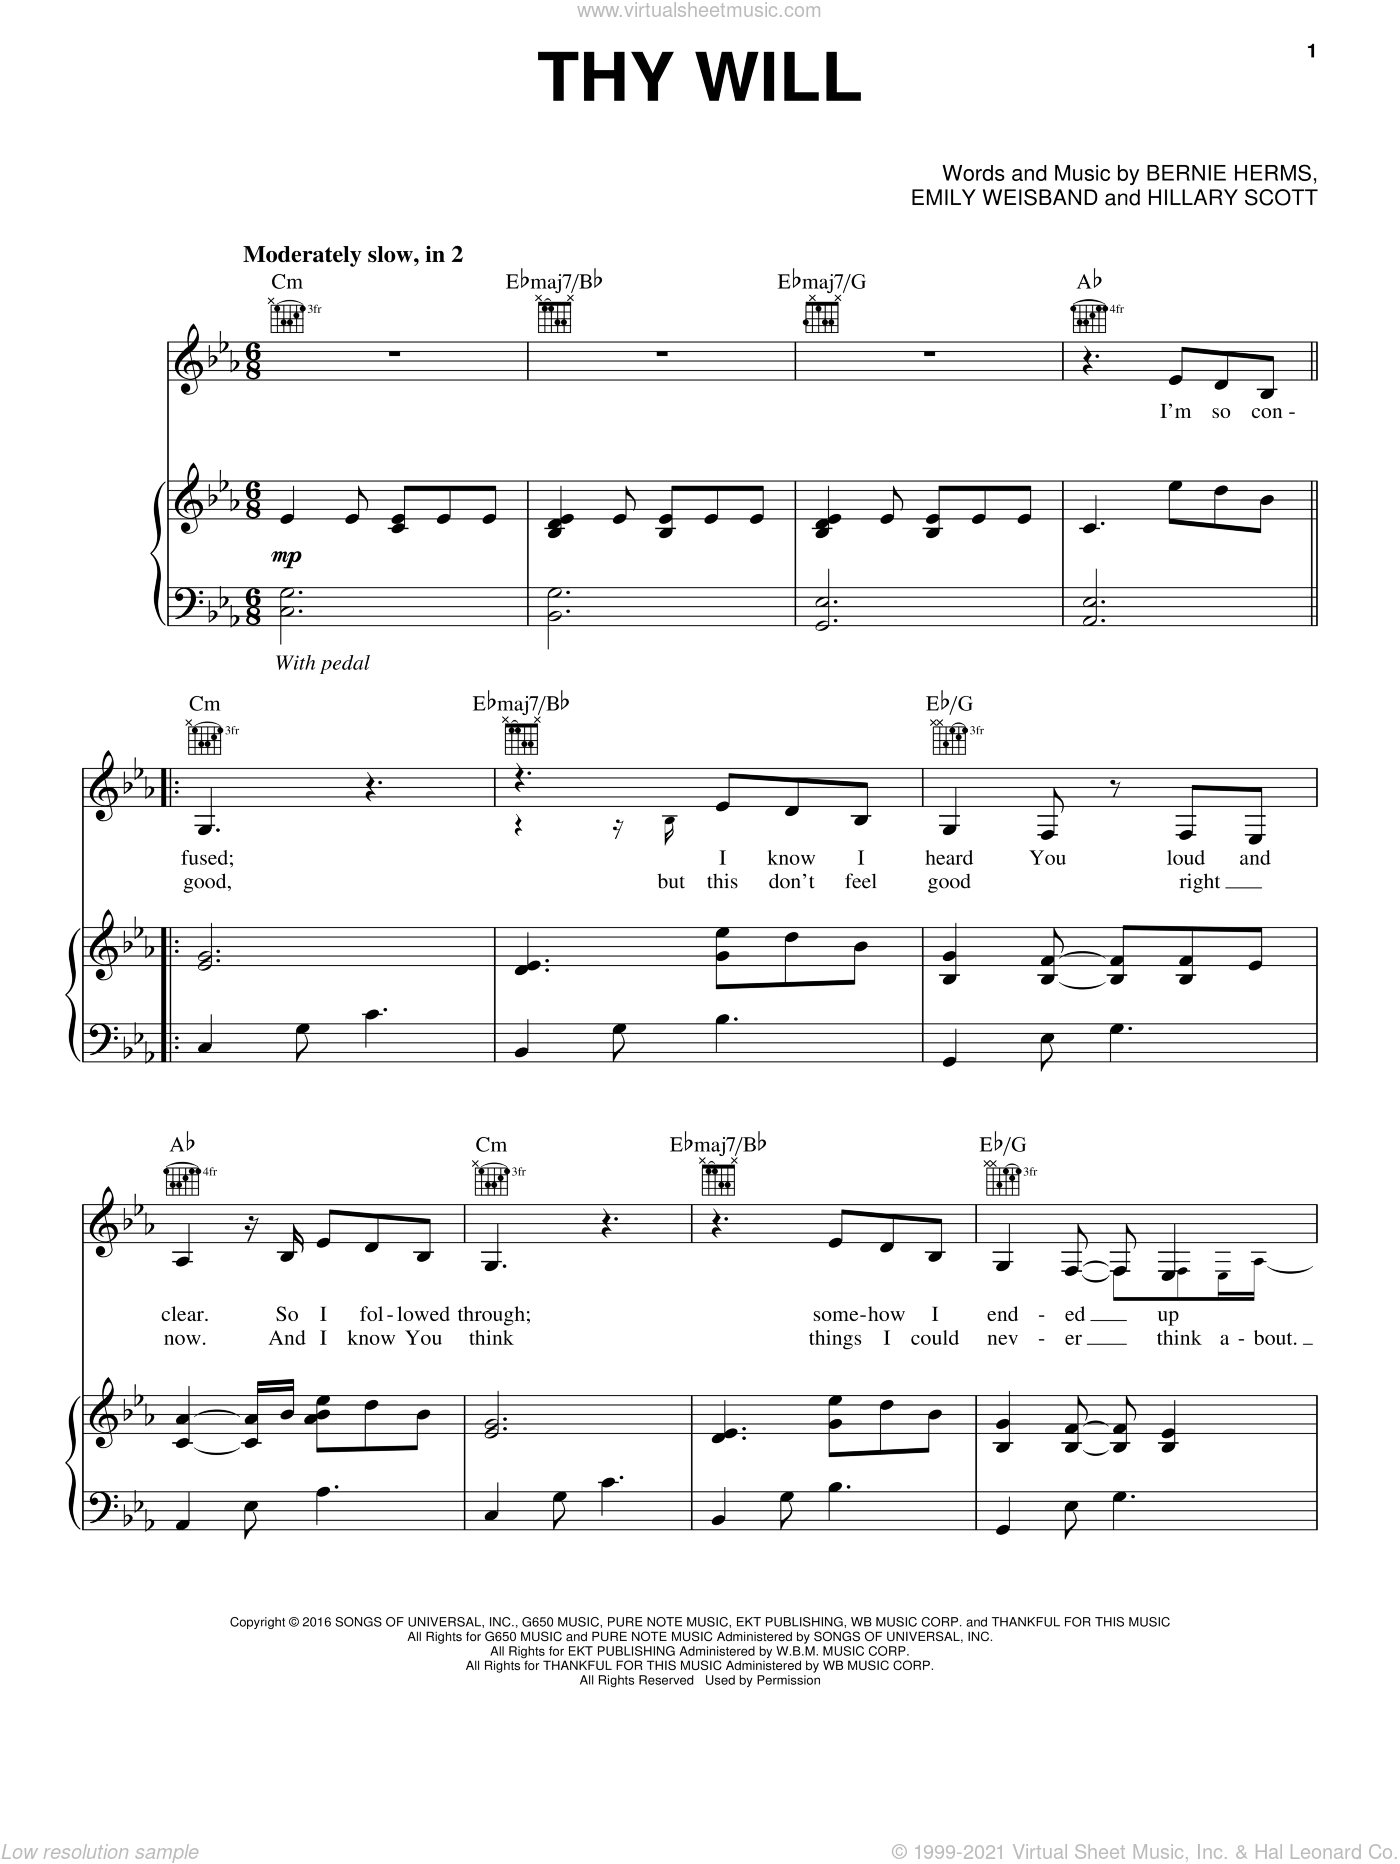 Thy Will sheet music for voice, piano or guitar by Hillary Scott & The Scott Family, Bernie Herms and Hillary Scott. Score Image Preview.